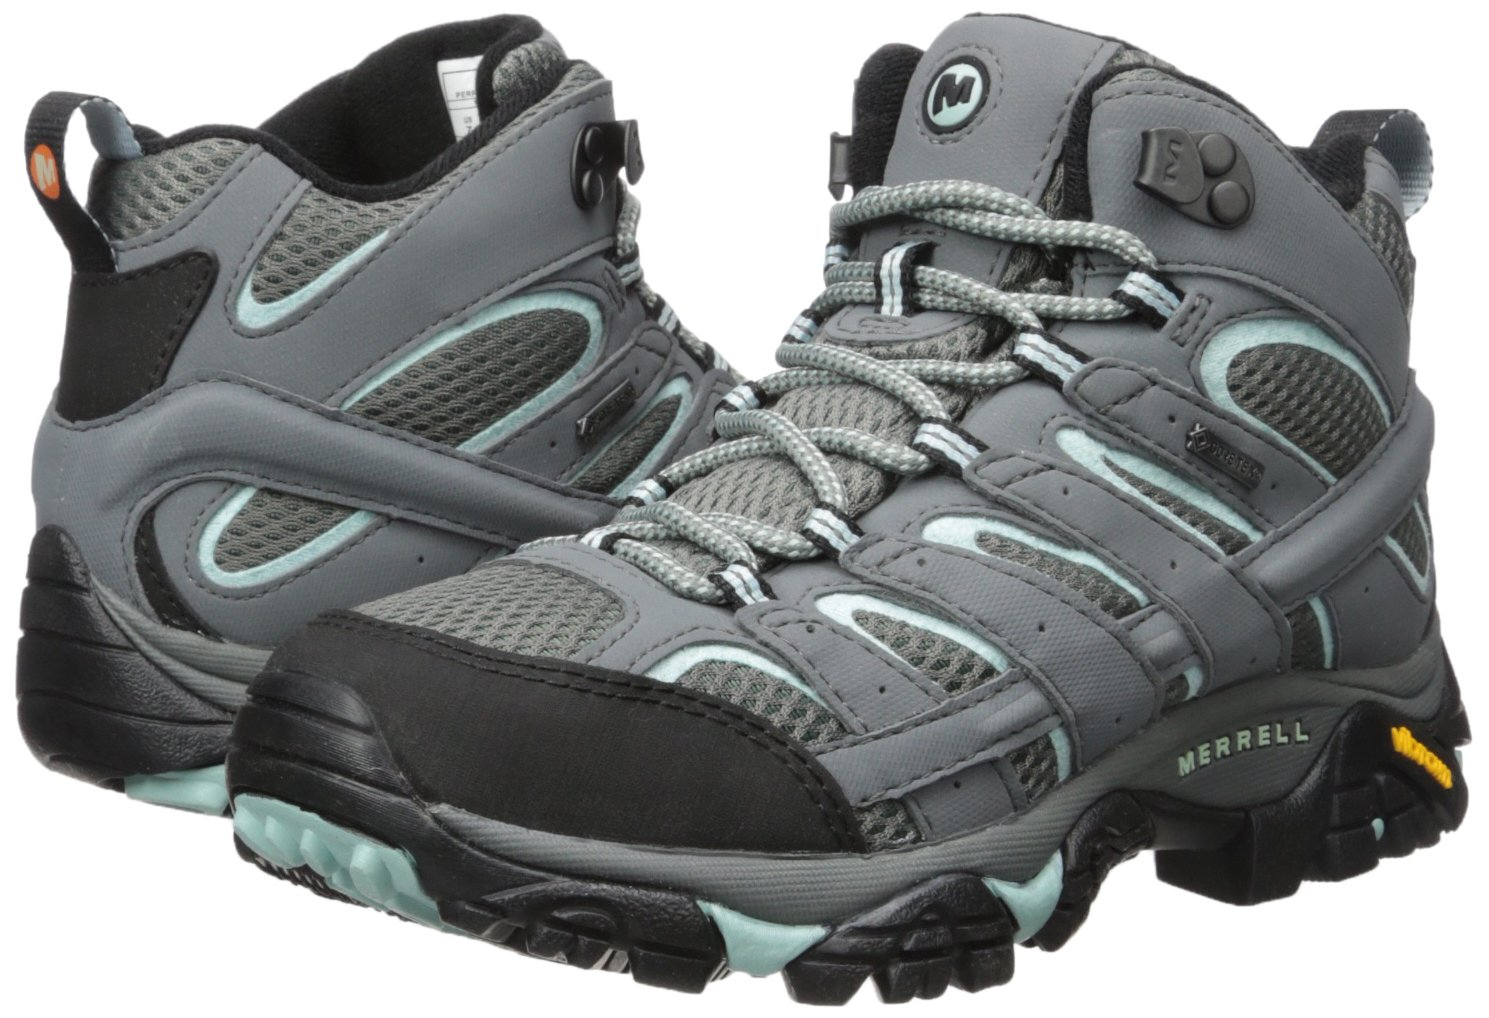 Merrell Women's Moab 2 Mid GTX Hiking Boot B01HFJZNLY 8 W US|Sedona Sage